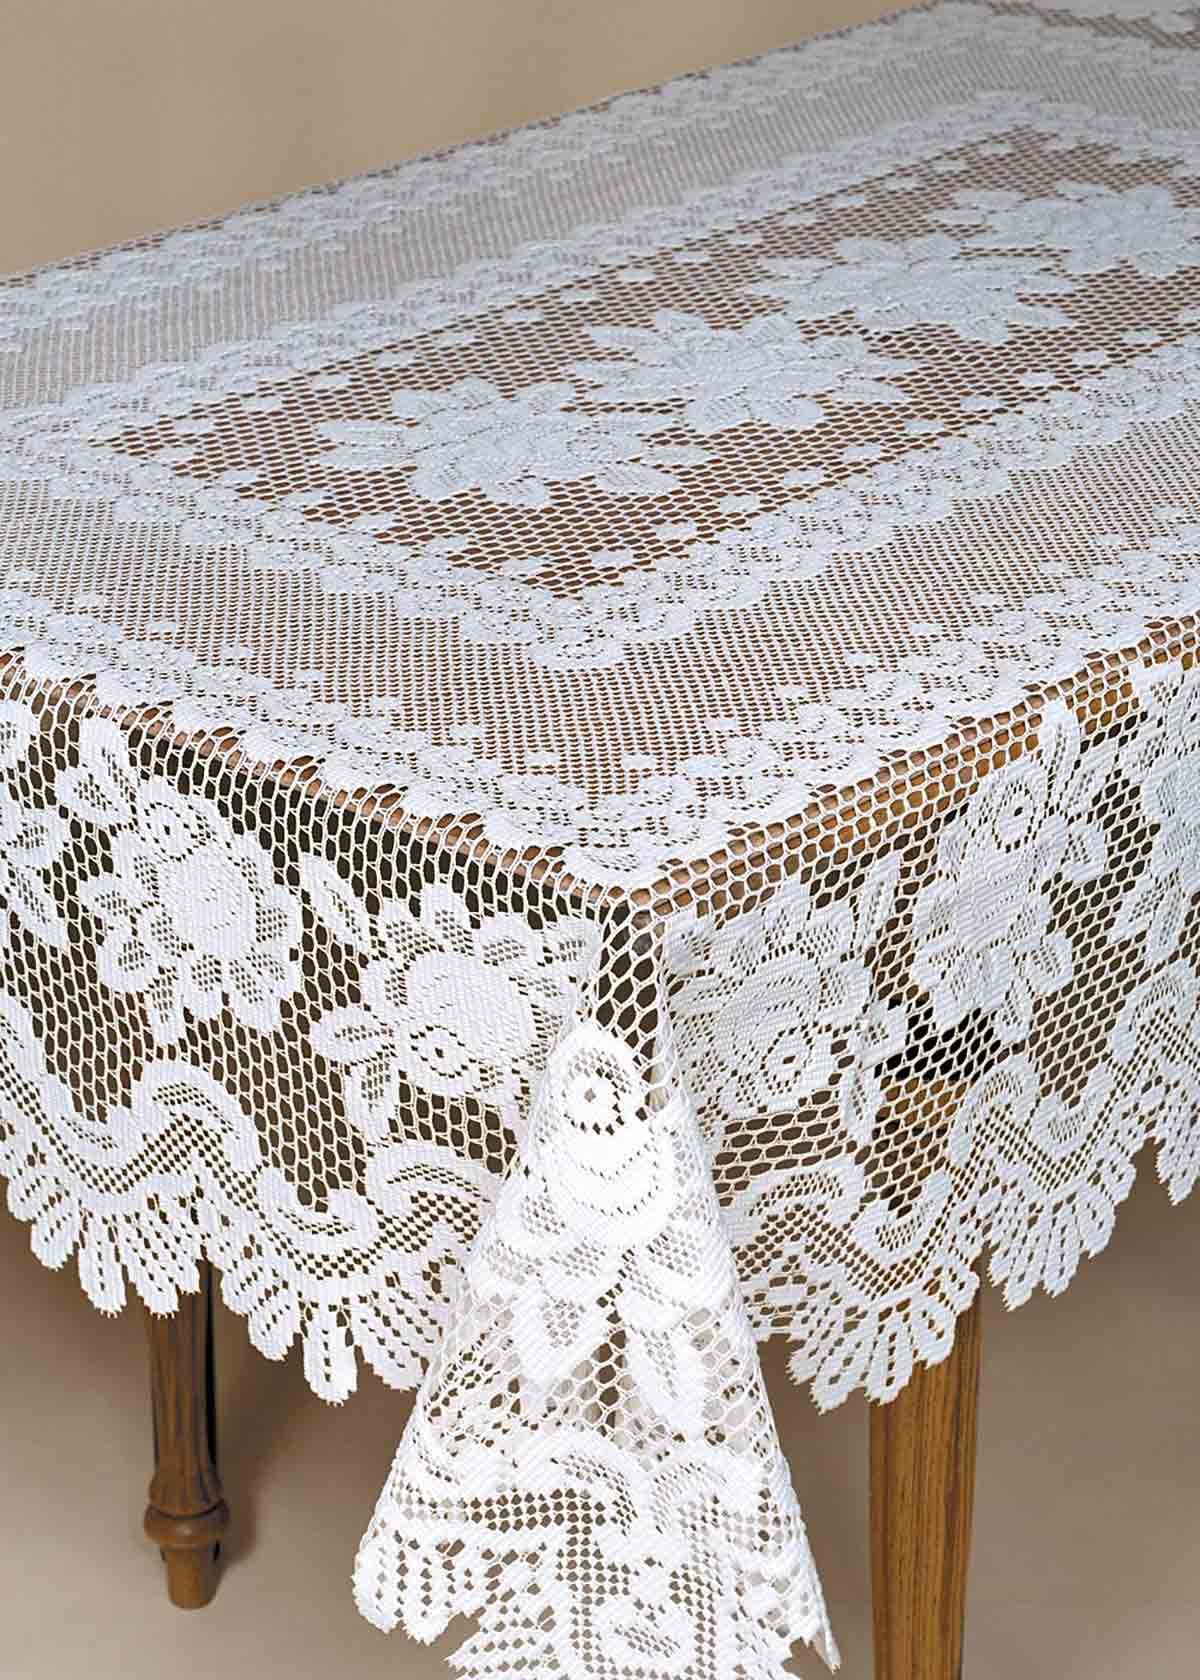 Lace Tablecloths Rose Heritage Lace Made In The U S A